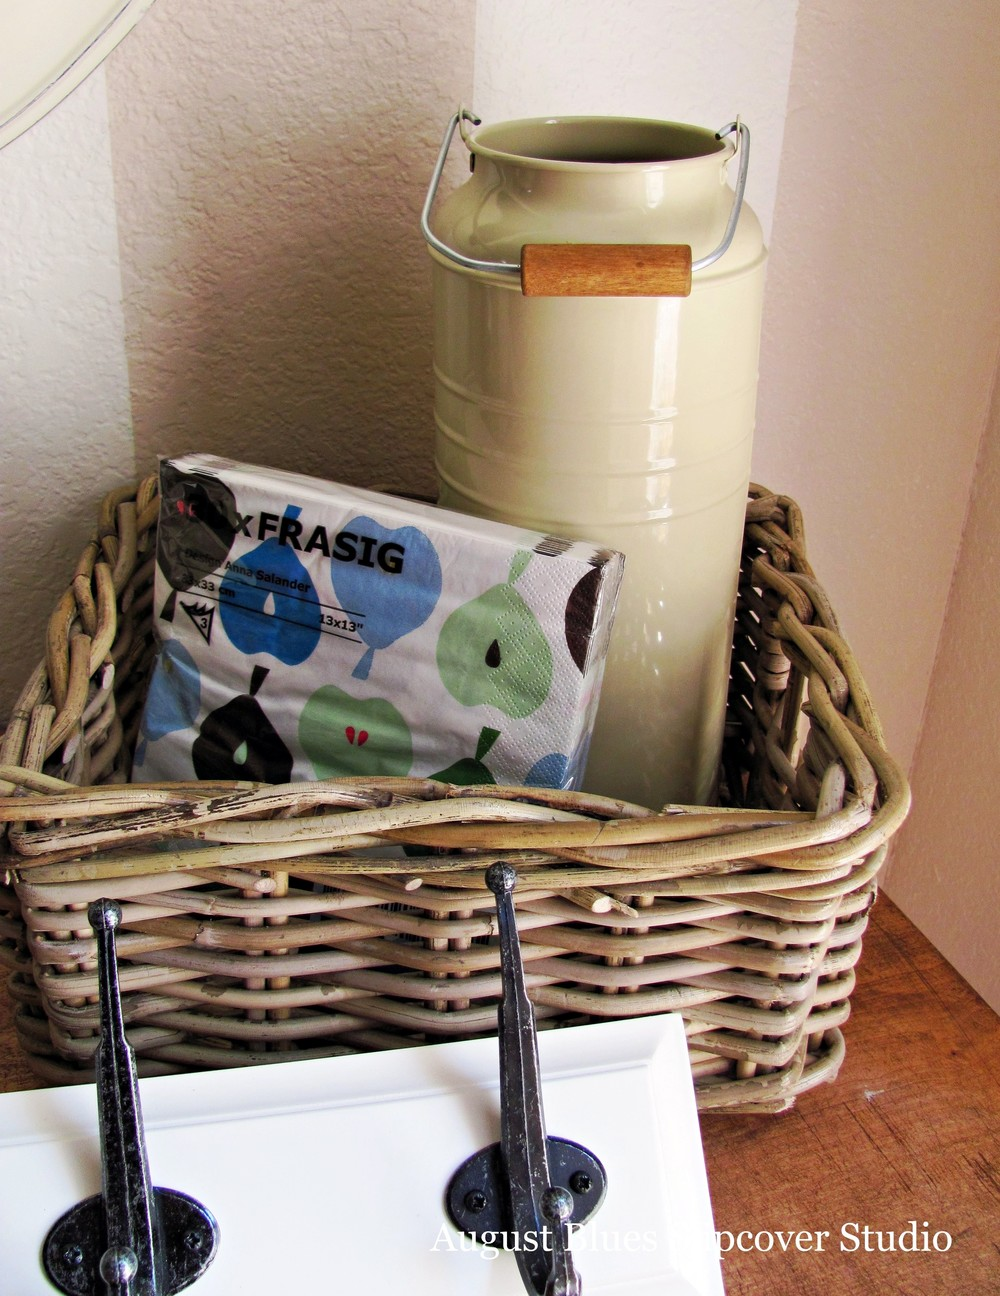 August Blues - Basket, Hooks, Vase, and Napkins